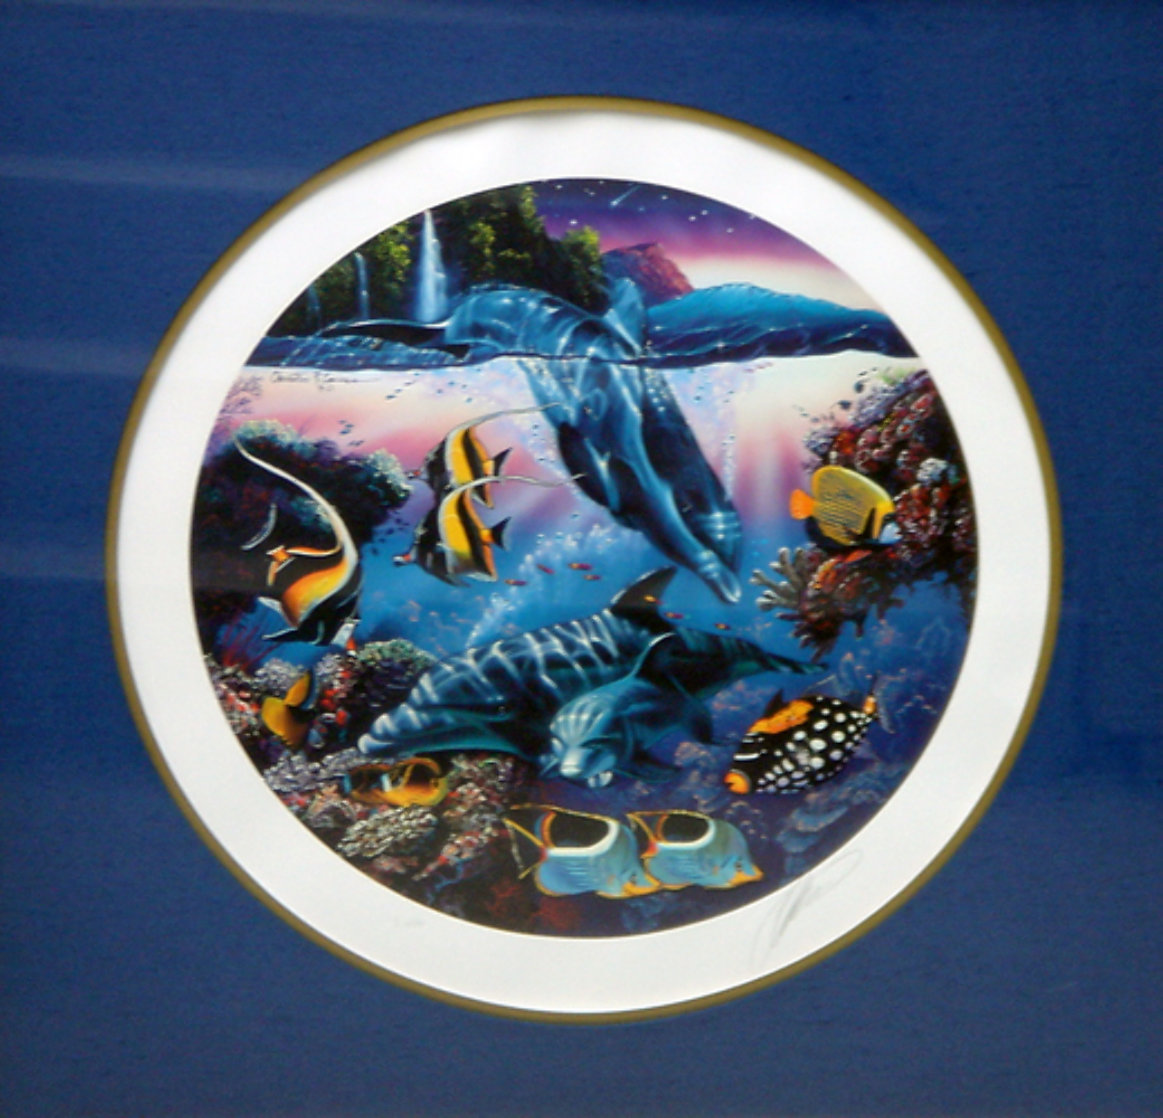 Dolphins of Hana 1991 Limited Edition Print by Christian Riese Lassen